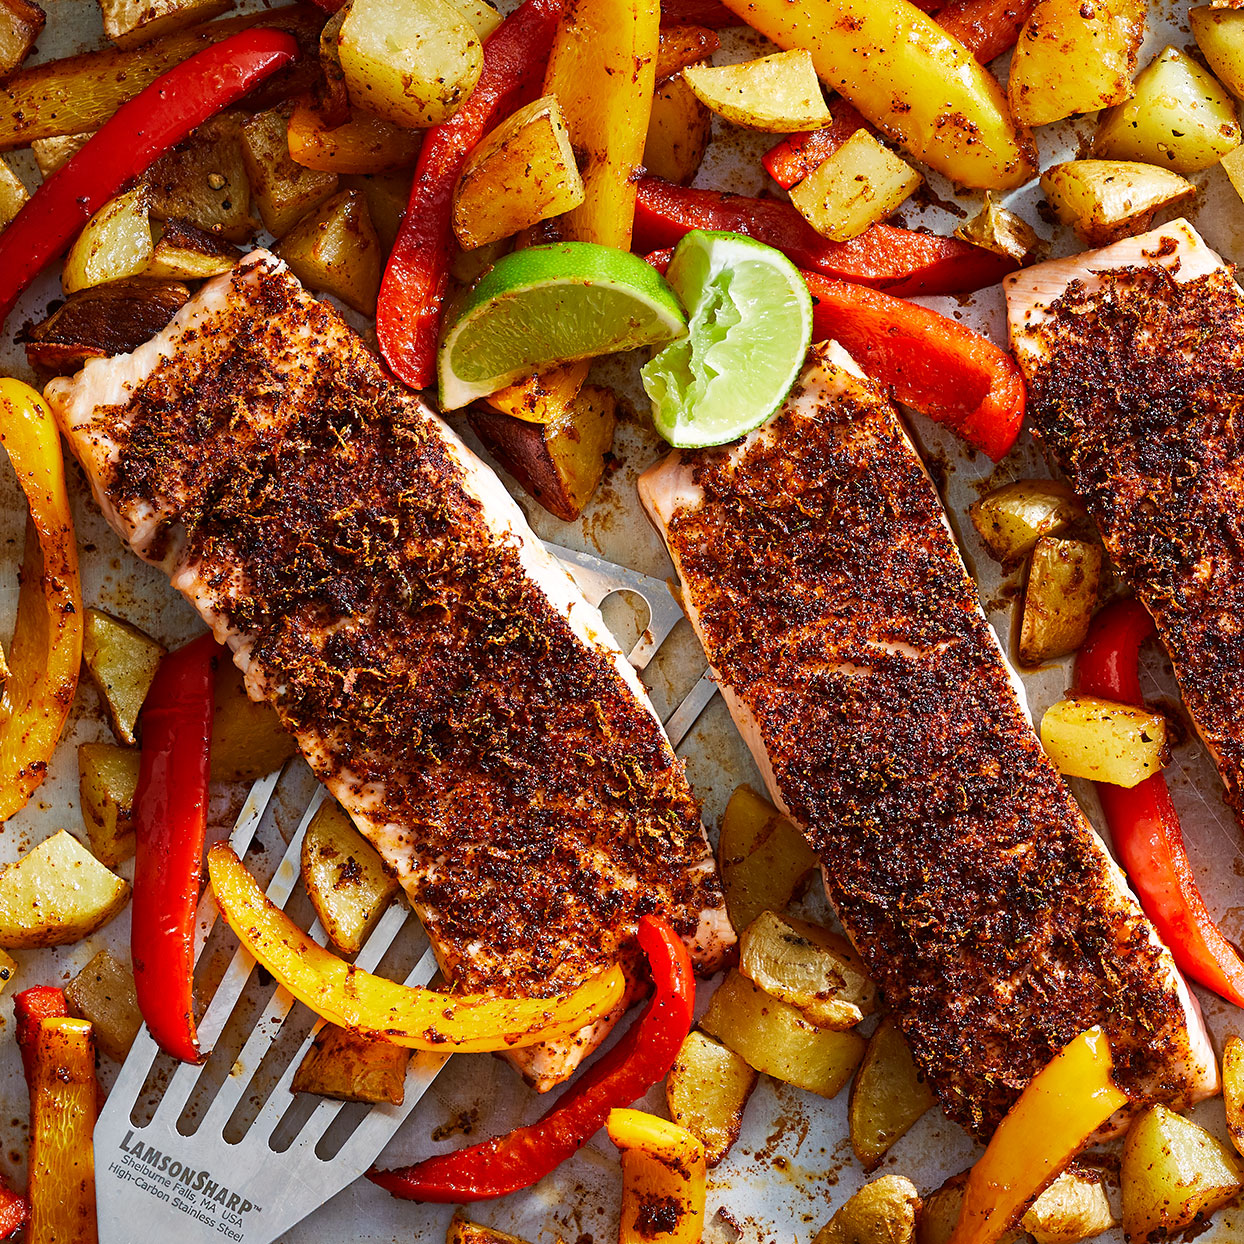 Busy weeknights beg for something simple like this salmon sheet-pan dinner. Like the name suggests, it's all cooked on one pan. The potatoes get a head start, followed by sweet bell peppers and finally chili-coated salmon fillets. It's a complete meal with easy cleanup!